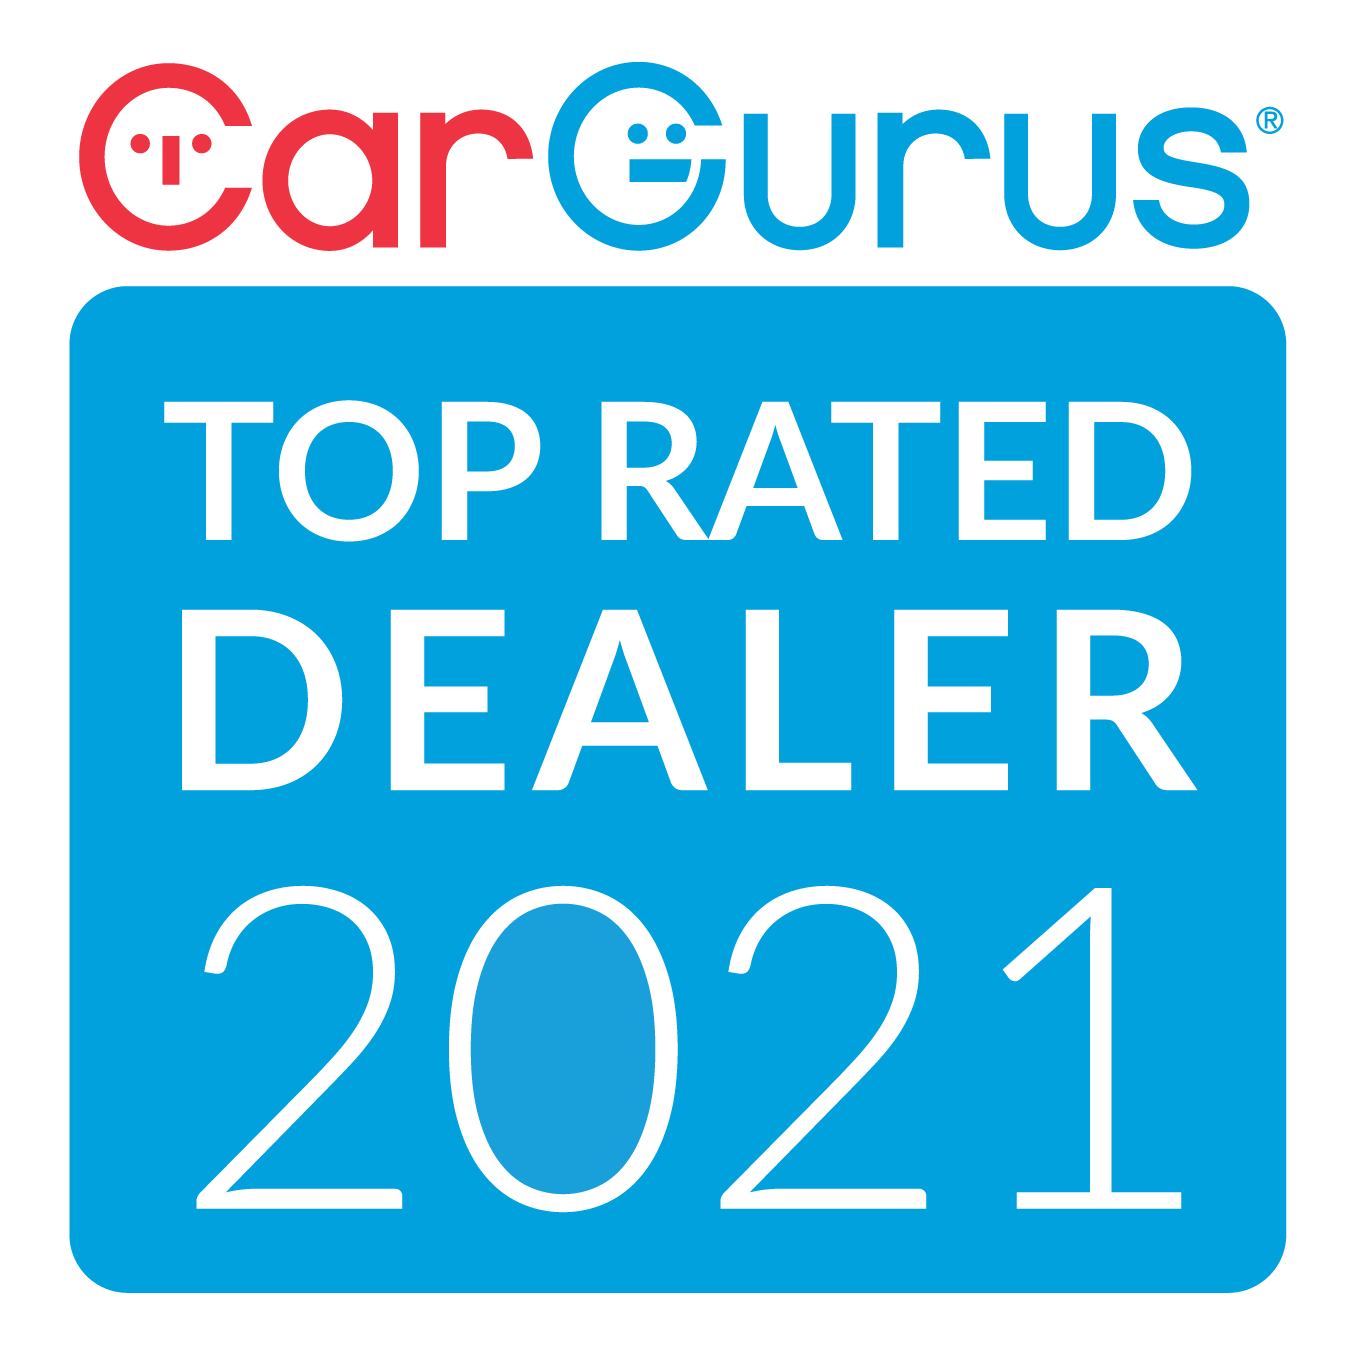 Purifoy Chevrolet CarGurus Top Rated Dealer